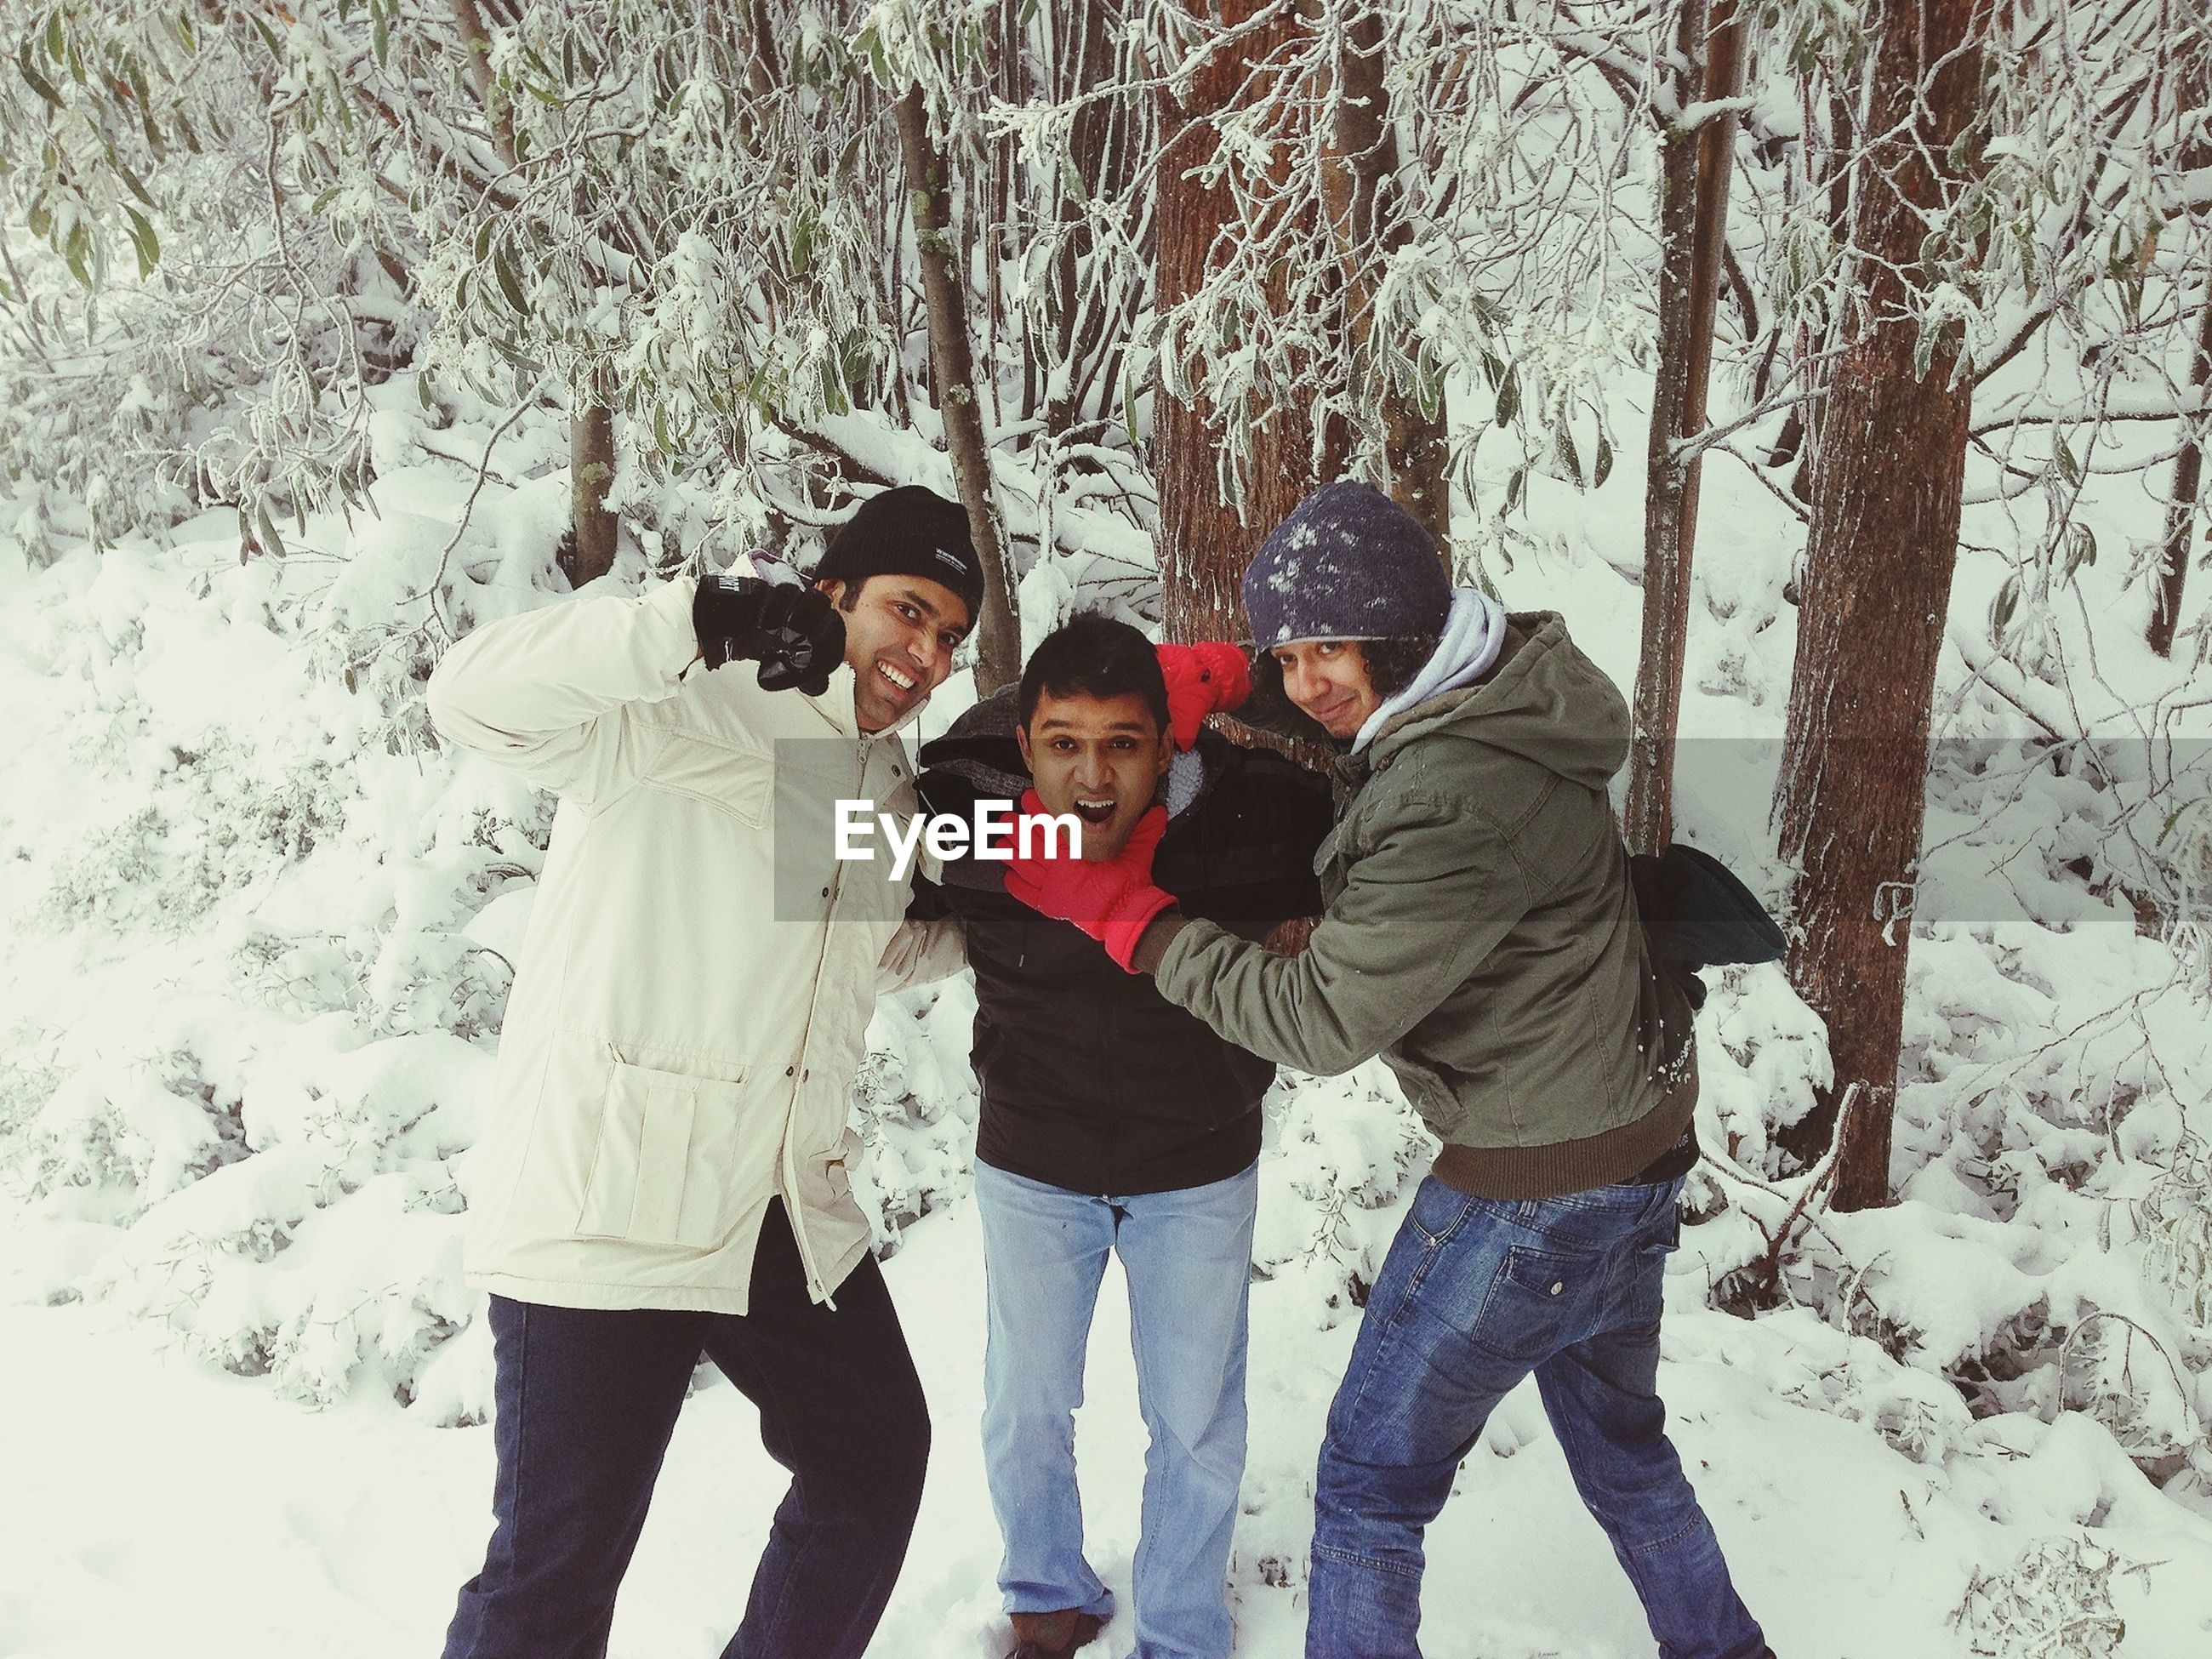 lifestyles, winter, leisure activity, cold temperature, snow, casual clothing, togetherness, full length, standing, bonding, season, warm clothing, love, walking, front view, men, person